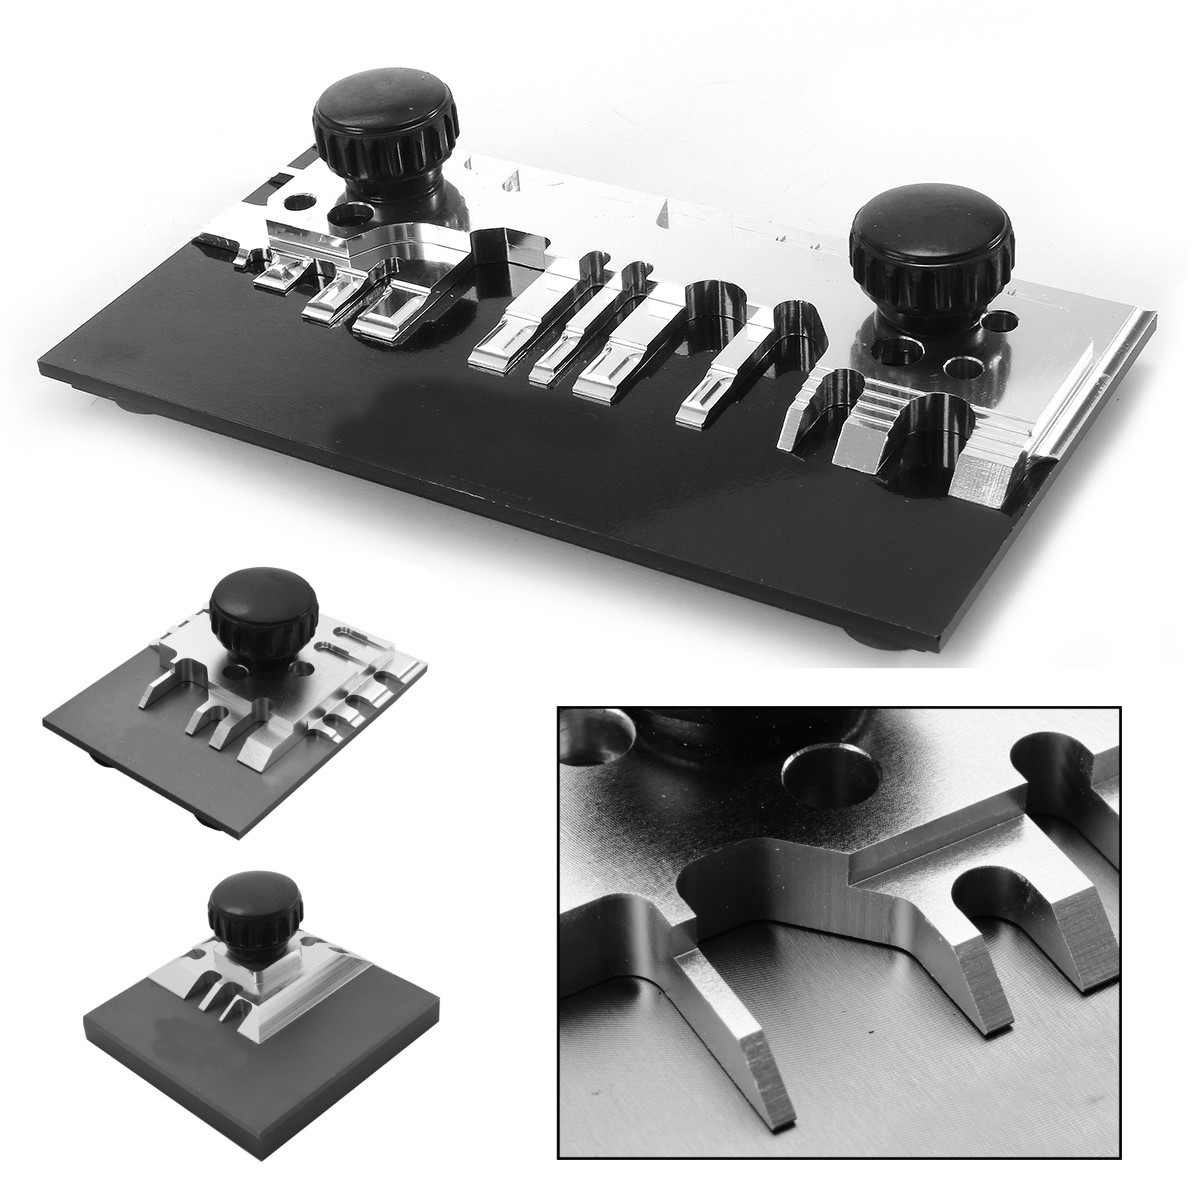 59mm/65mm140mm Hold & Fold Mini Model Photo Etch Bending Tool Bender Blade Set Parts Accessories